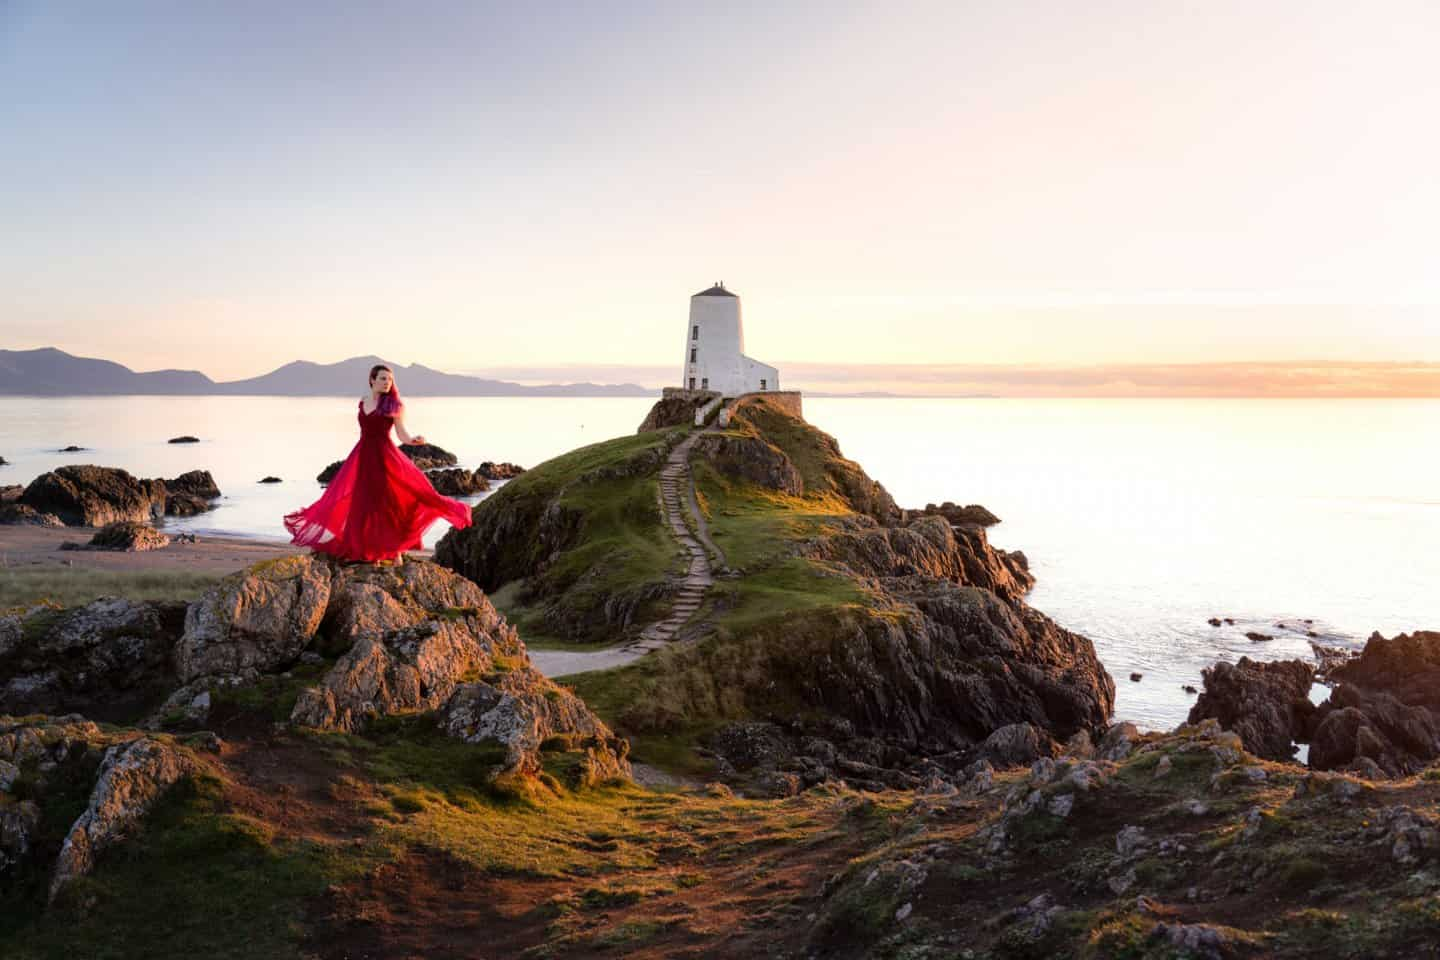 Not far from Snowdonia is one of the best place for photography in the Llanddwyn Lighthouse.